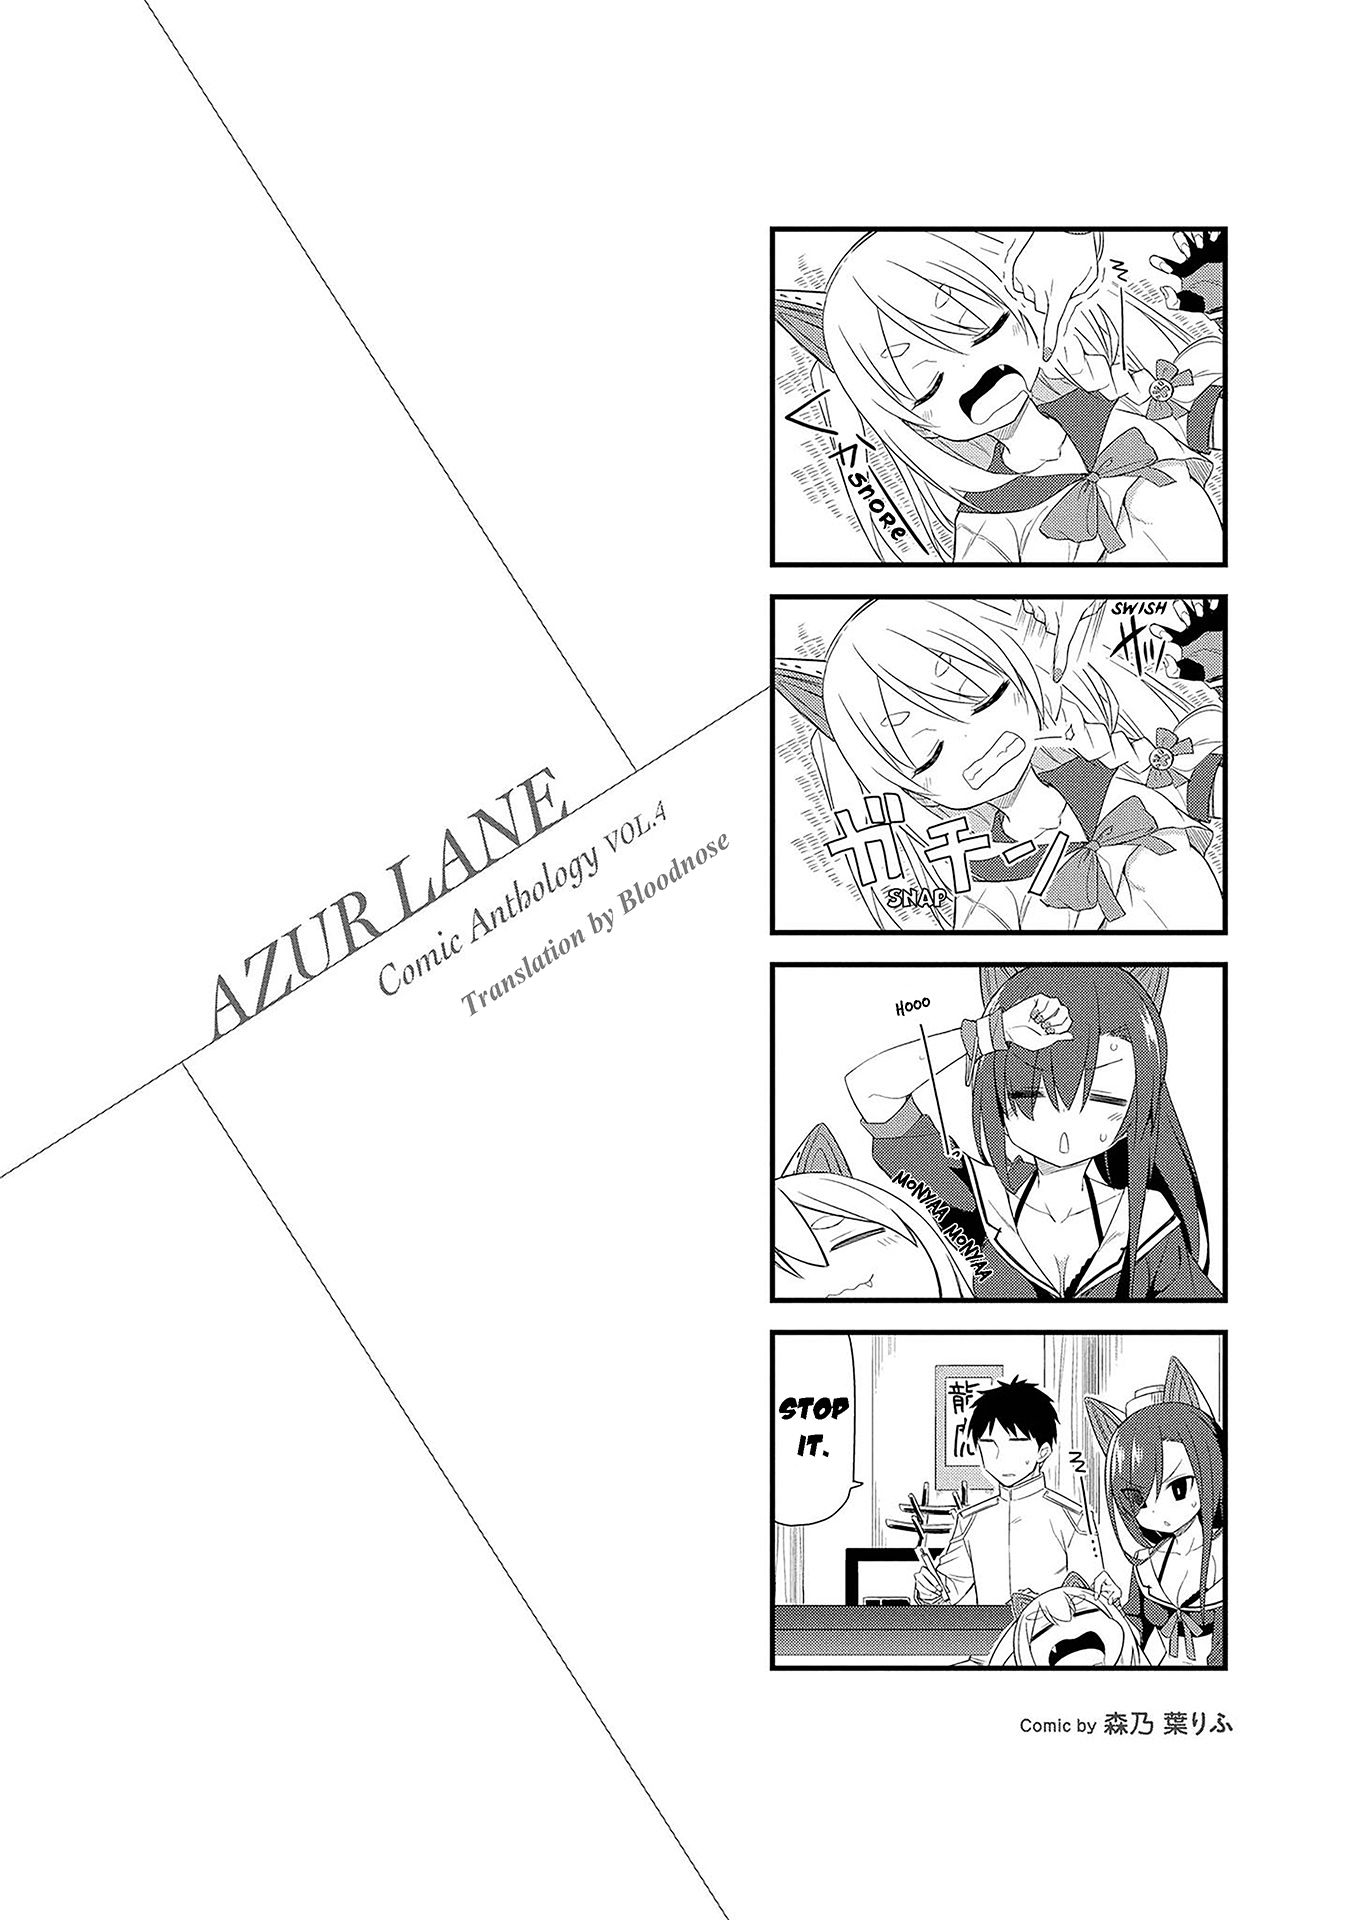 Manga Azur Lane Comic Anthology - Chapter 58 Page 2